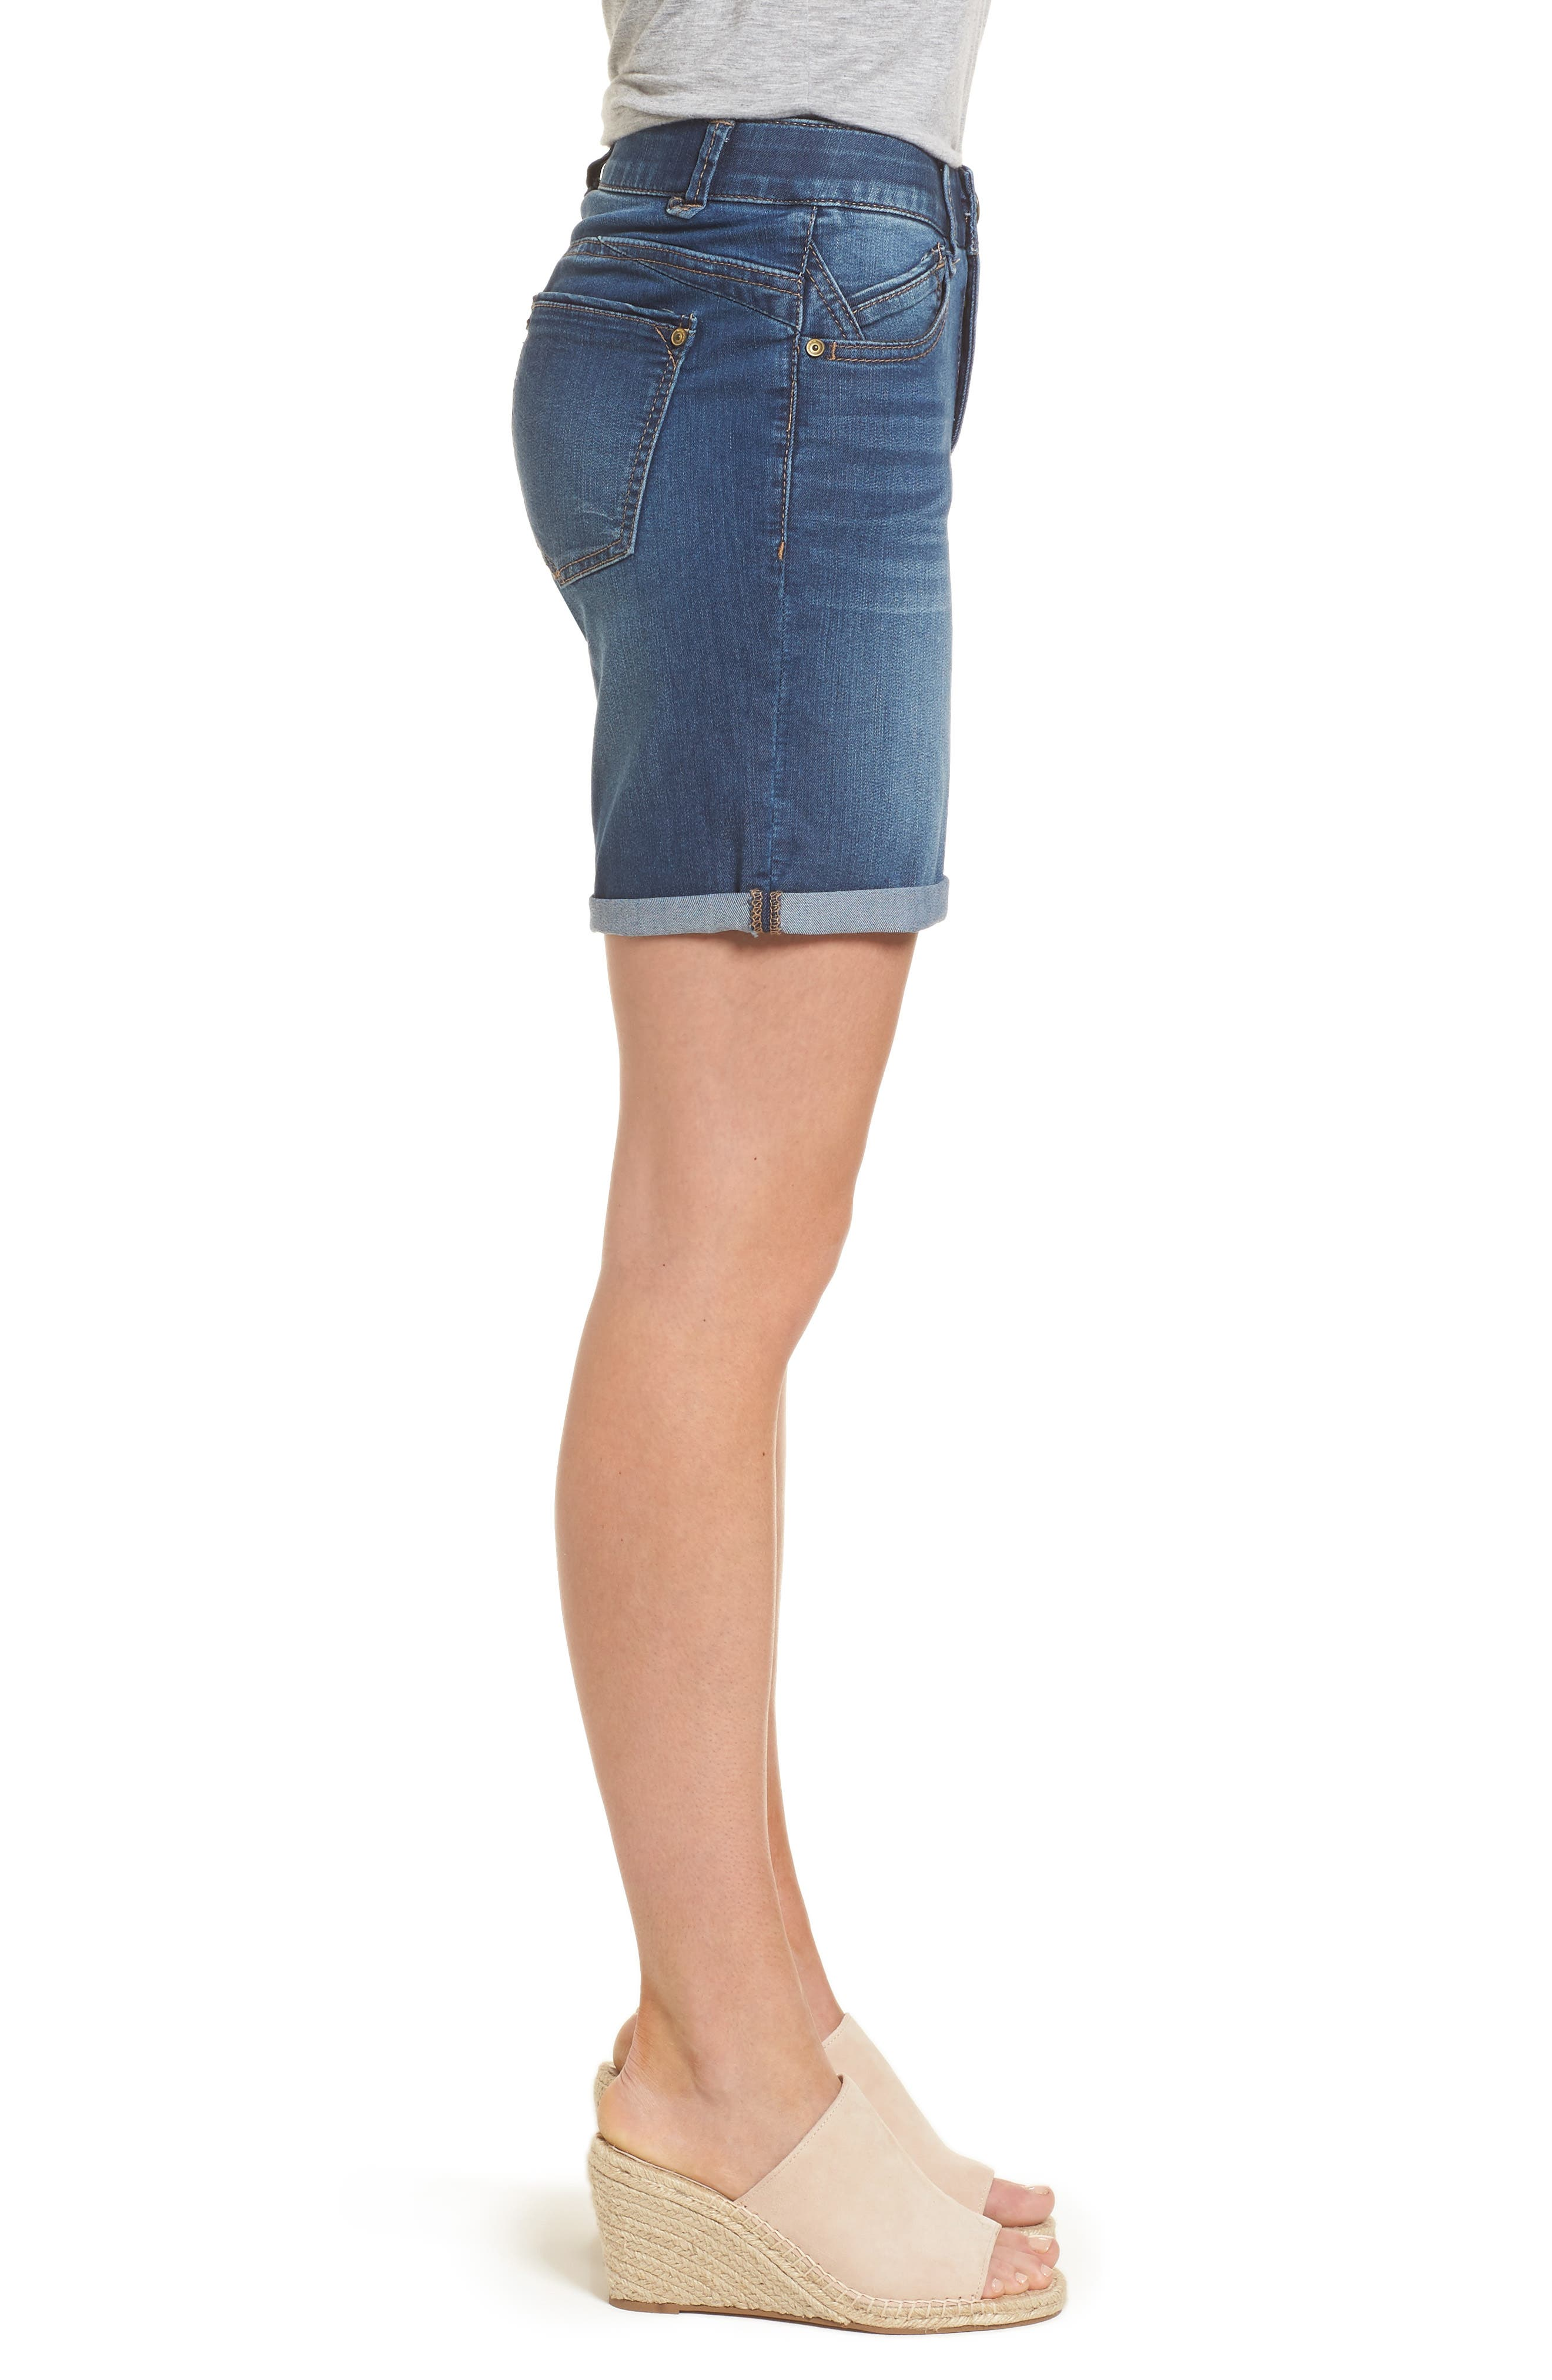 Ab-solution Cuffed Denim Shorts,                             Alternate thumbnail 3, color,                             420